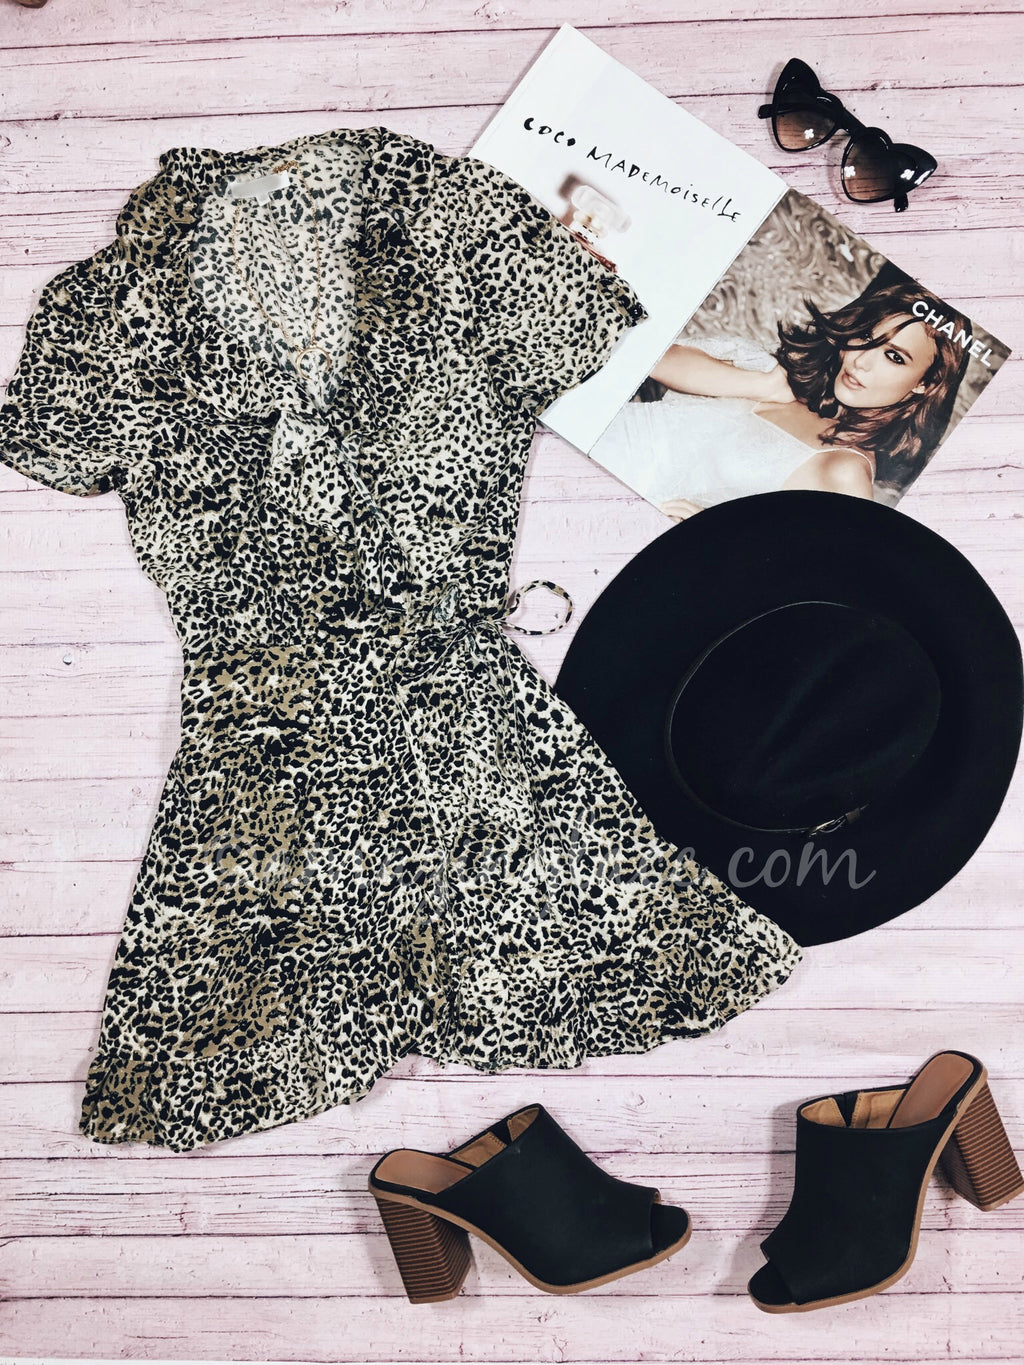 LEOPARD DRESS AND BLACK MULES OUTFIT